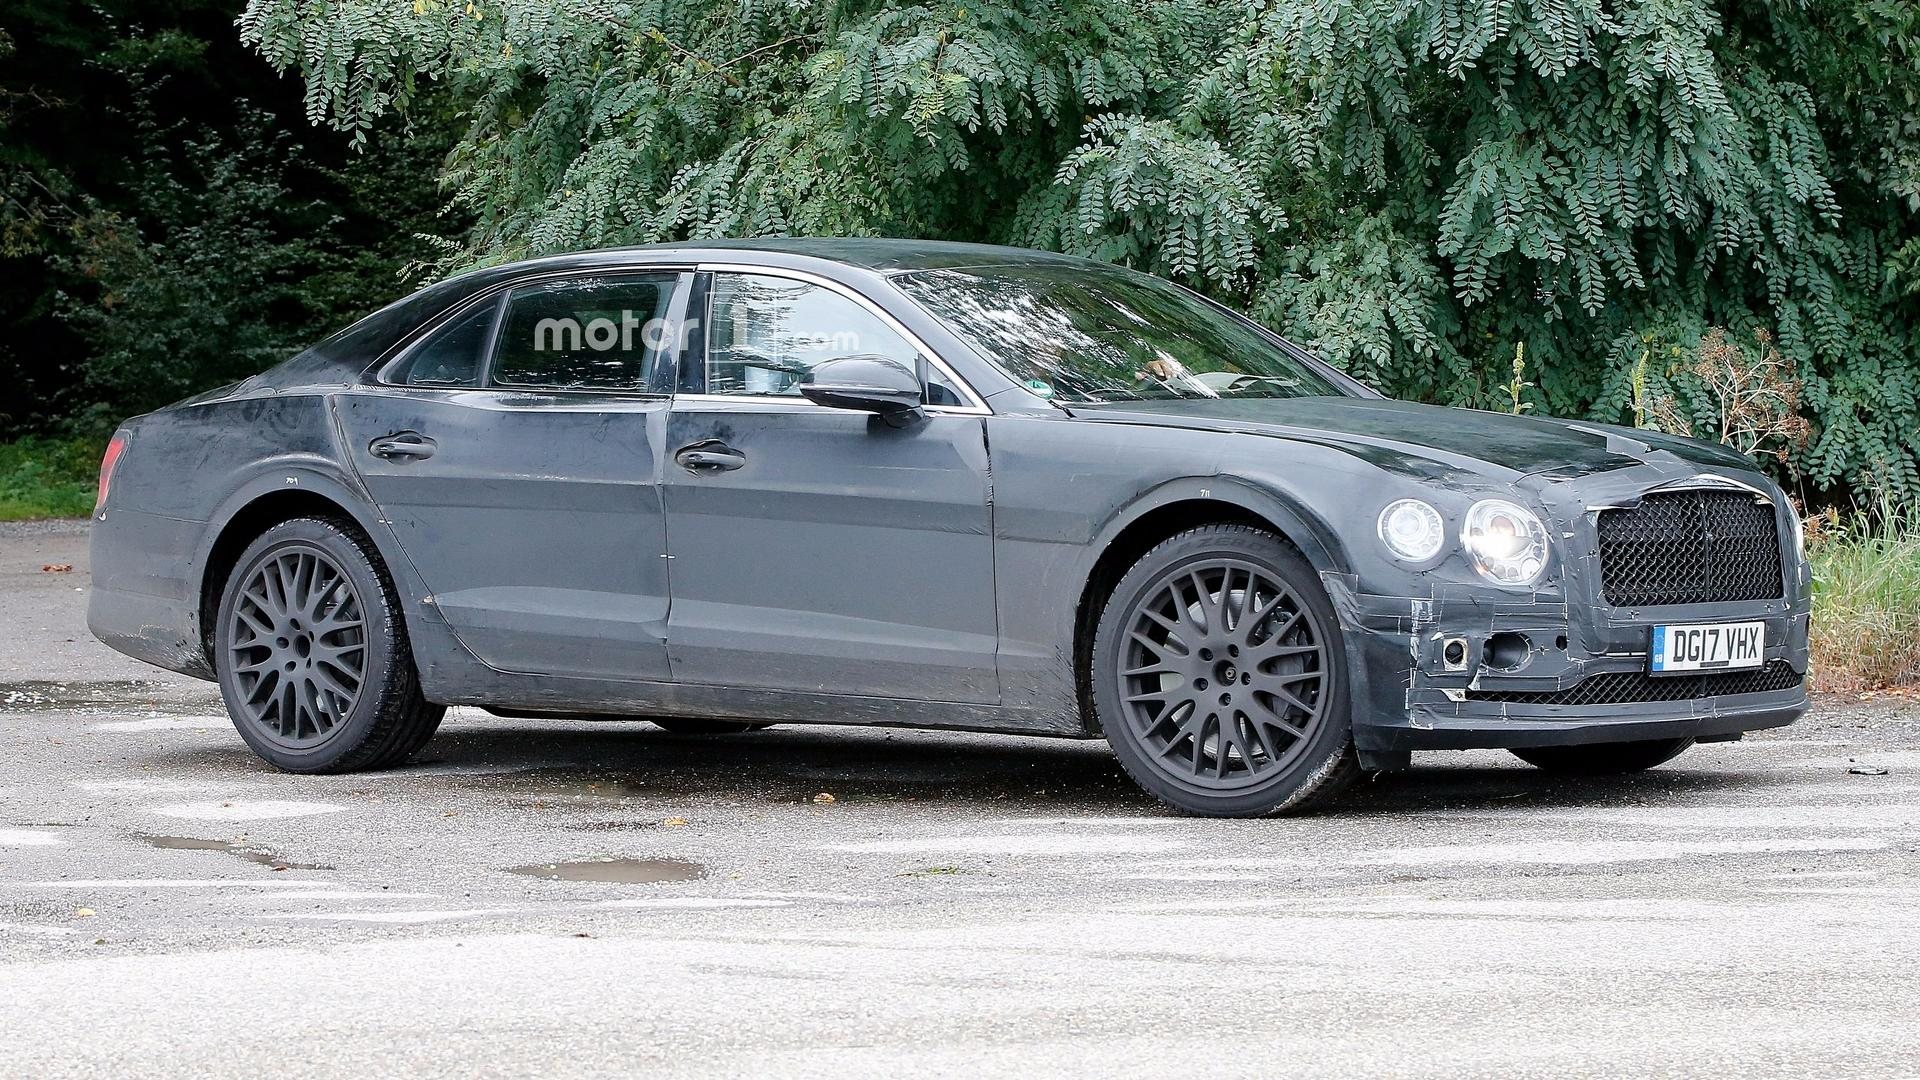 2017 Bentley Continental Gt W12 >> 2019 Bentley Flying Spur Caught Testing With New W12 Engine